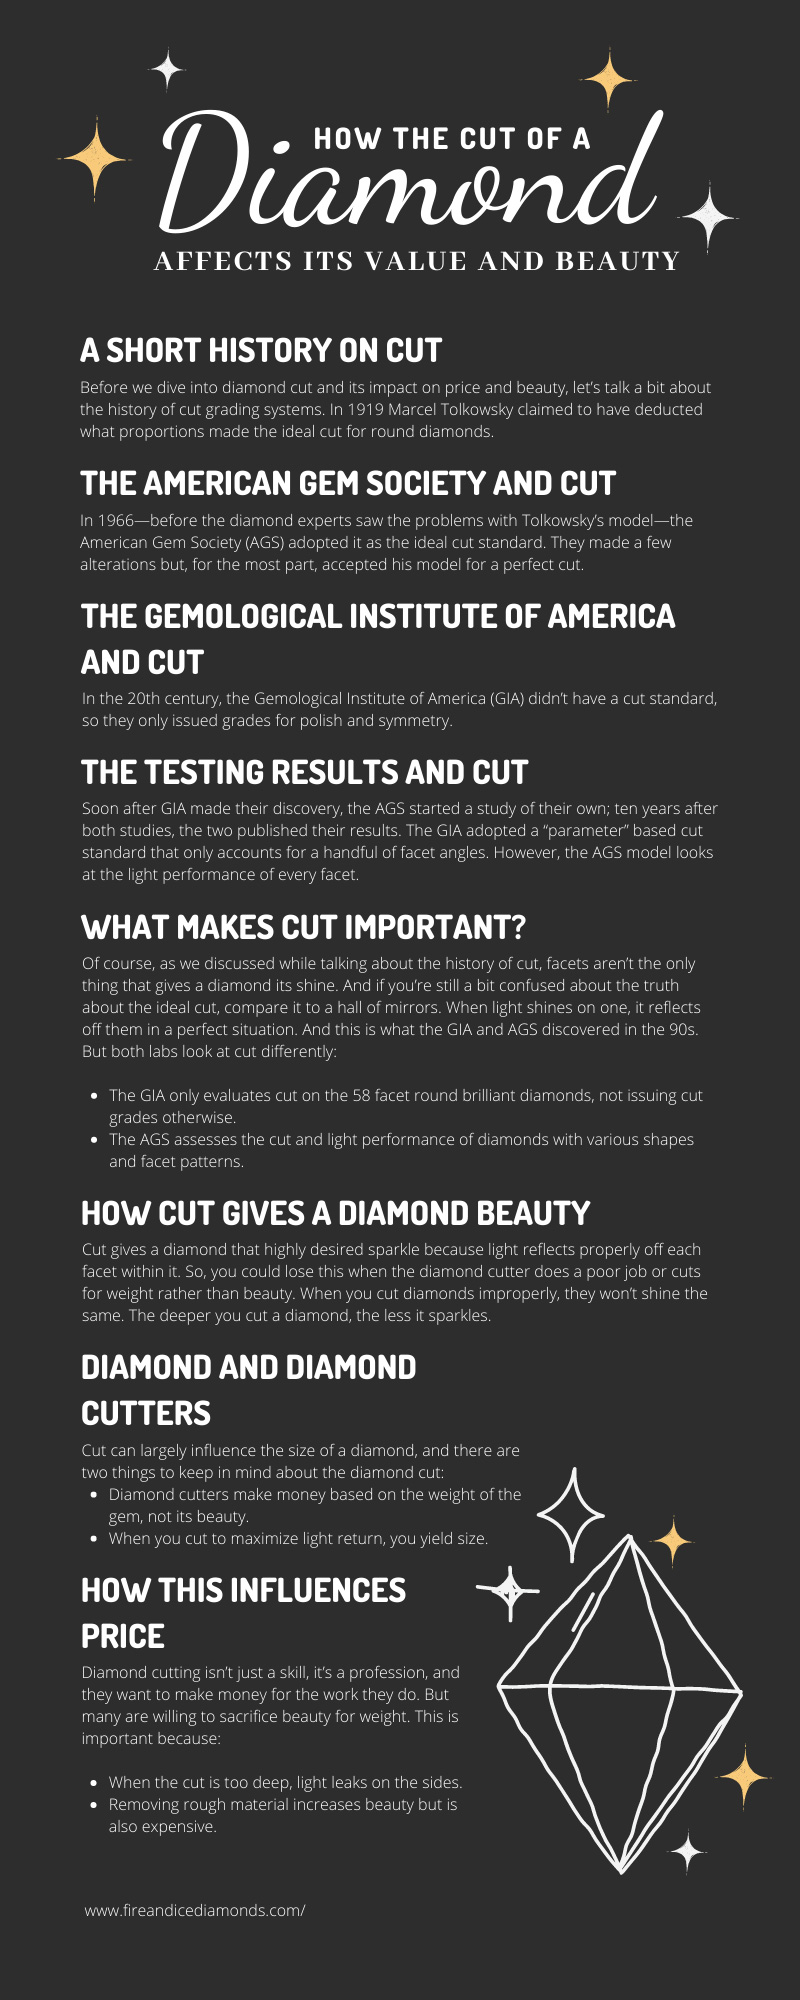 How the Cut of a Diamond Affects Its Value and Beauty